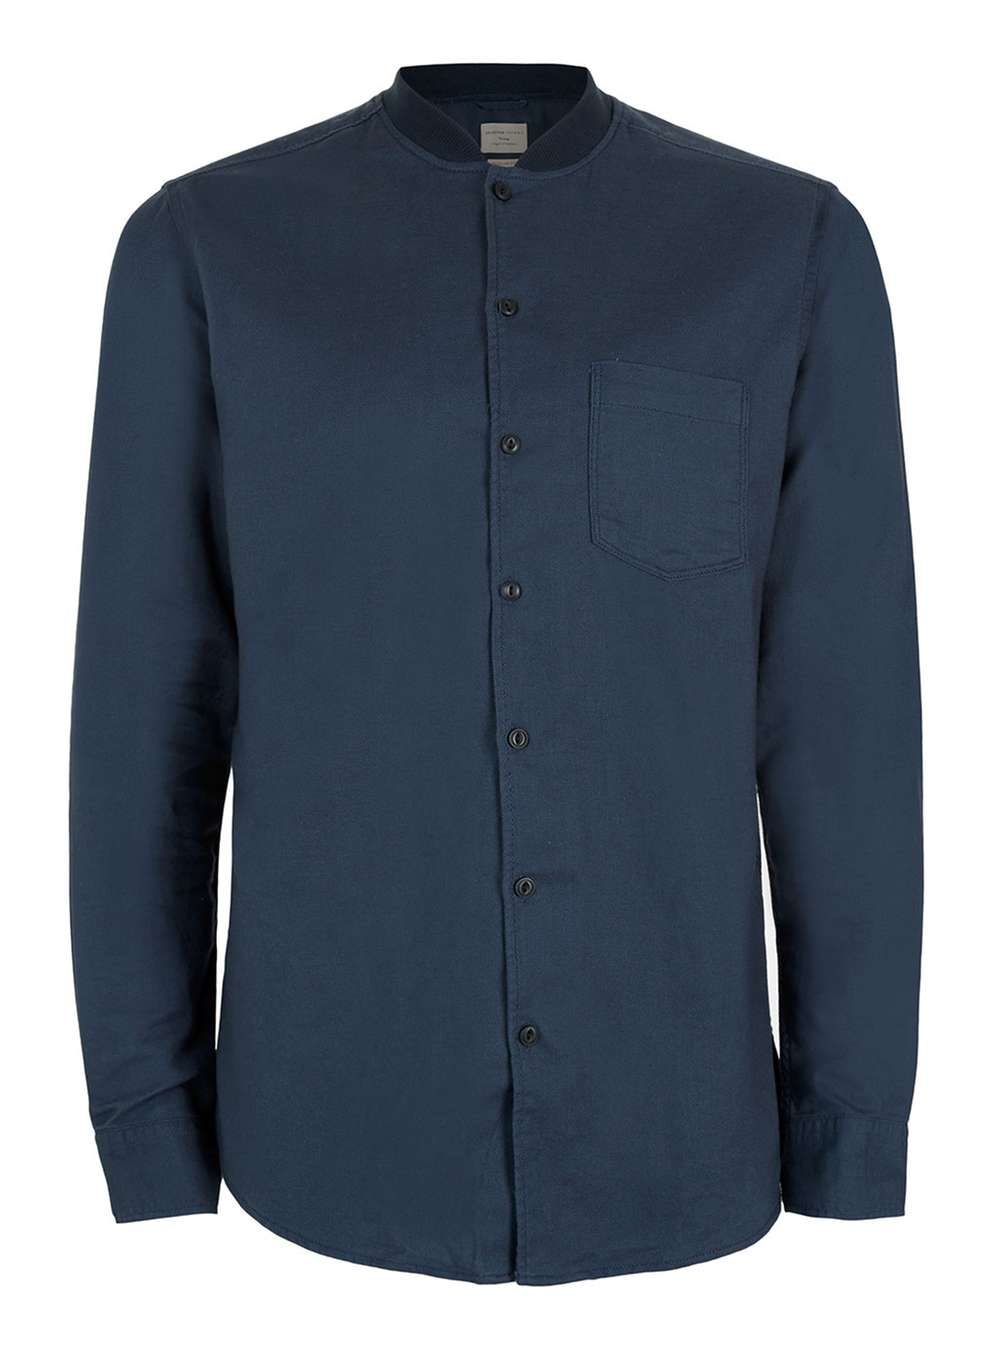 SELECTED HOMME ribbed collar cotton shirt, £45 (topman.com)